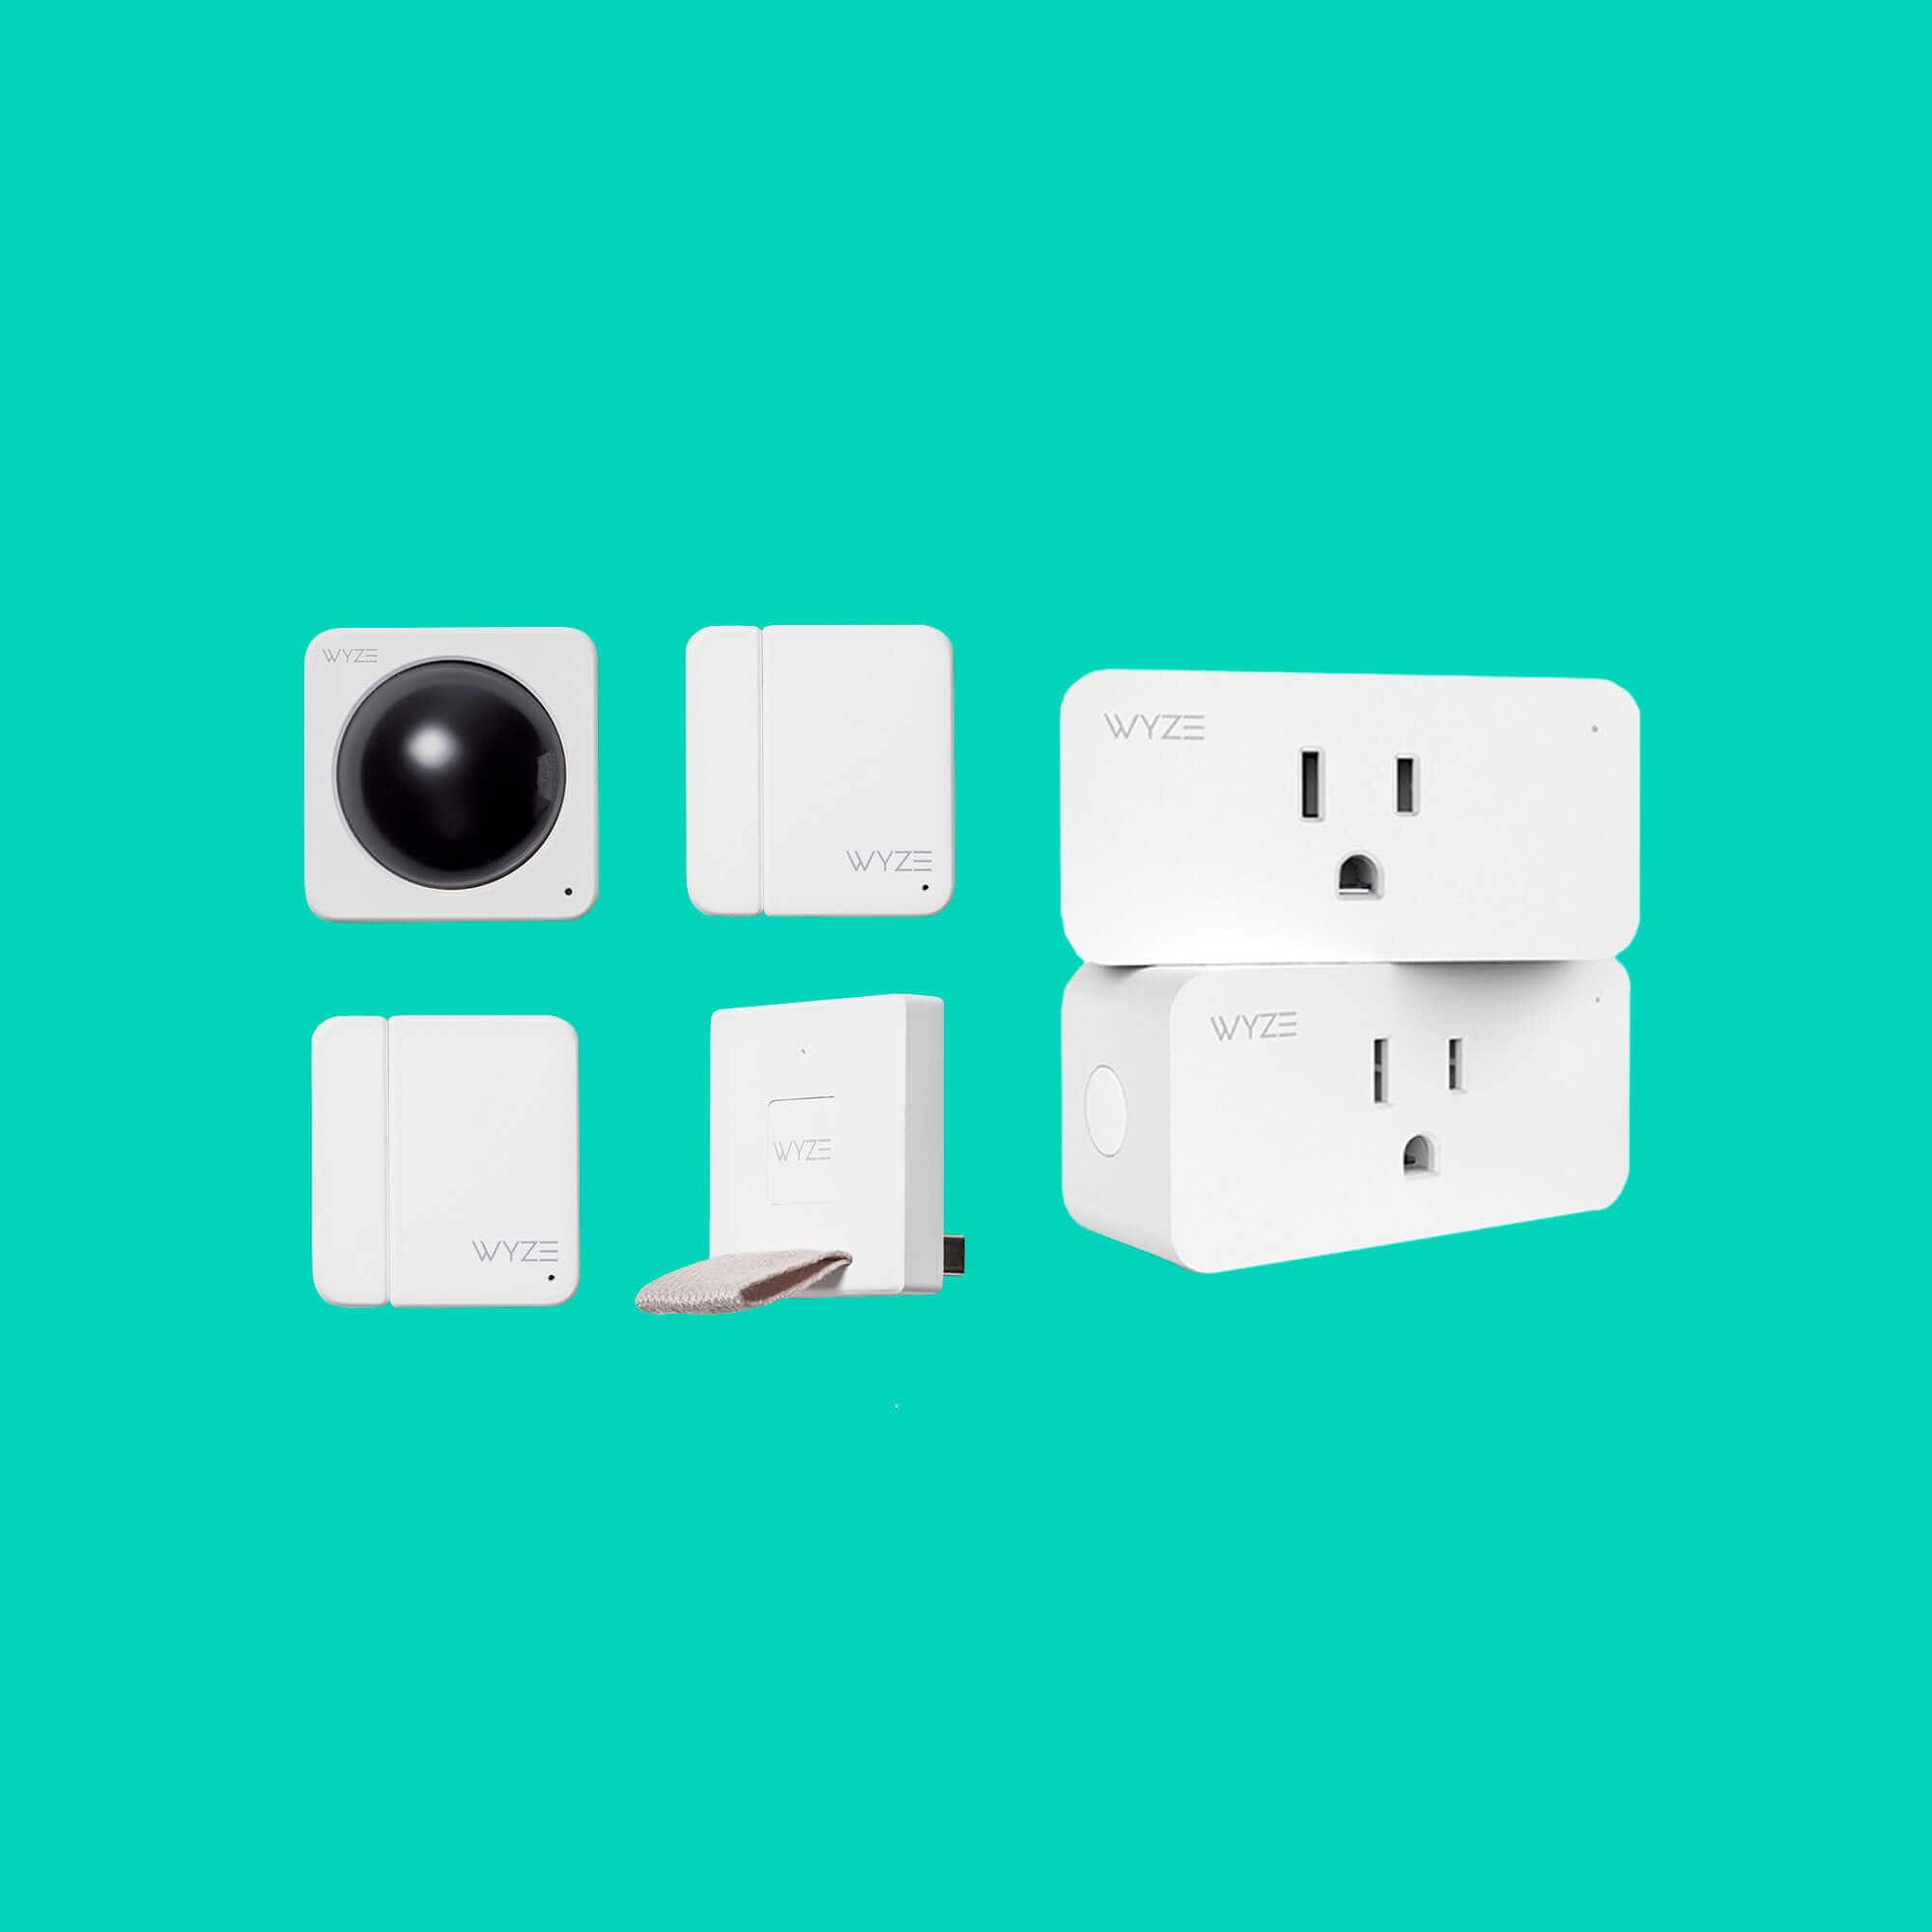 Wyze Plug - 2 Pack - $14.99 plus $4.99 shipping